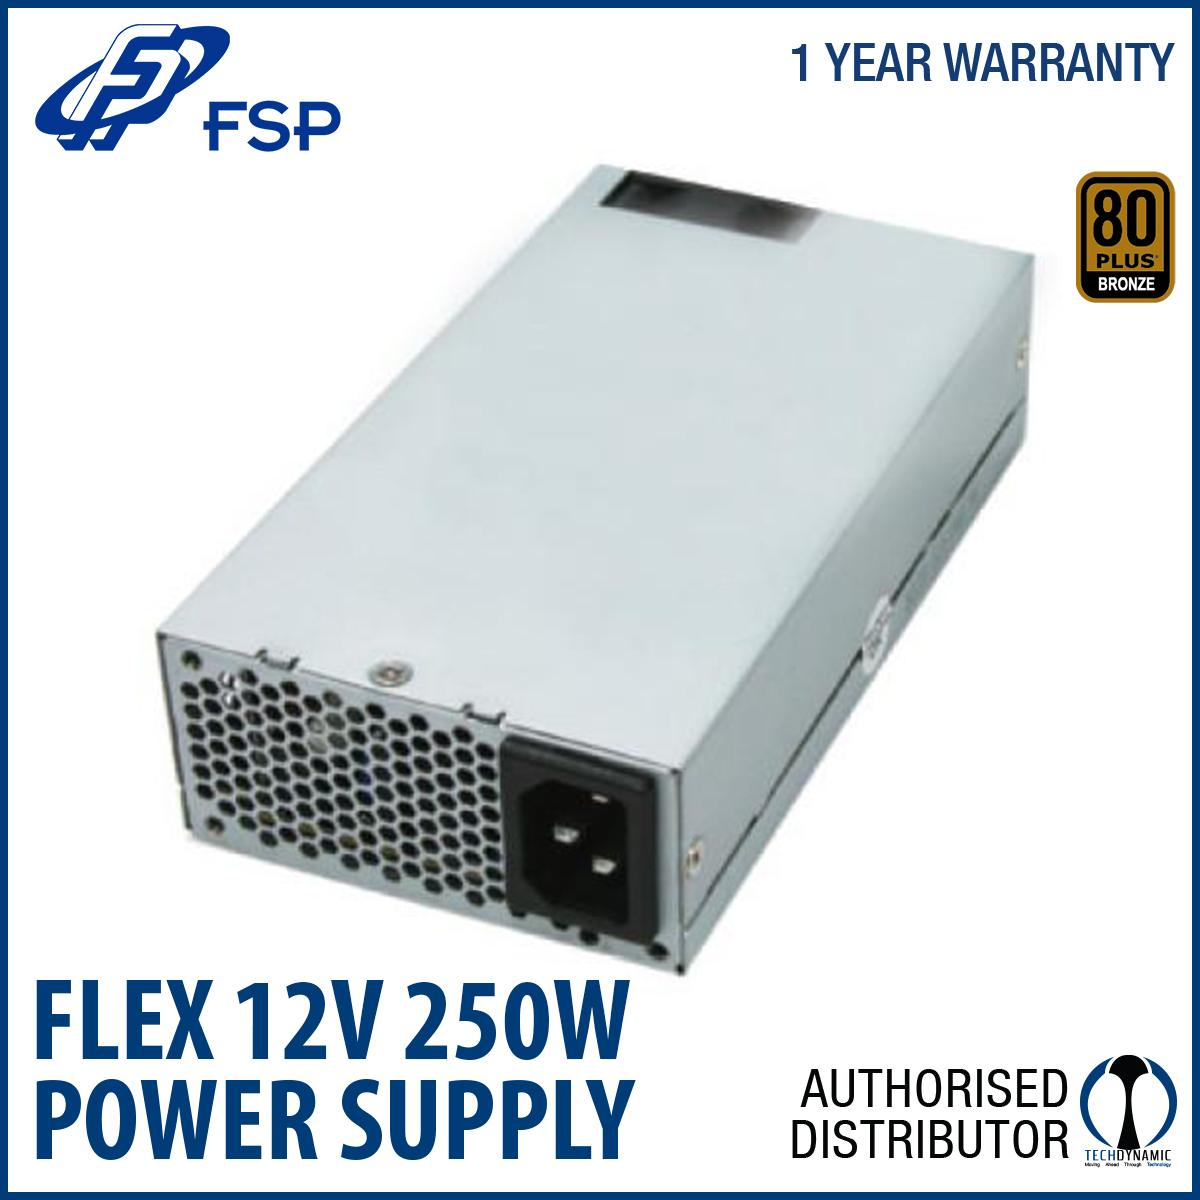 Fsp Power Supply Flex 12V250W Coupon